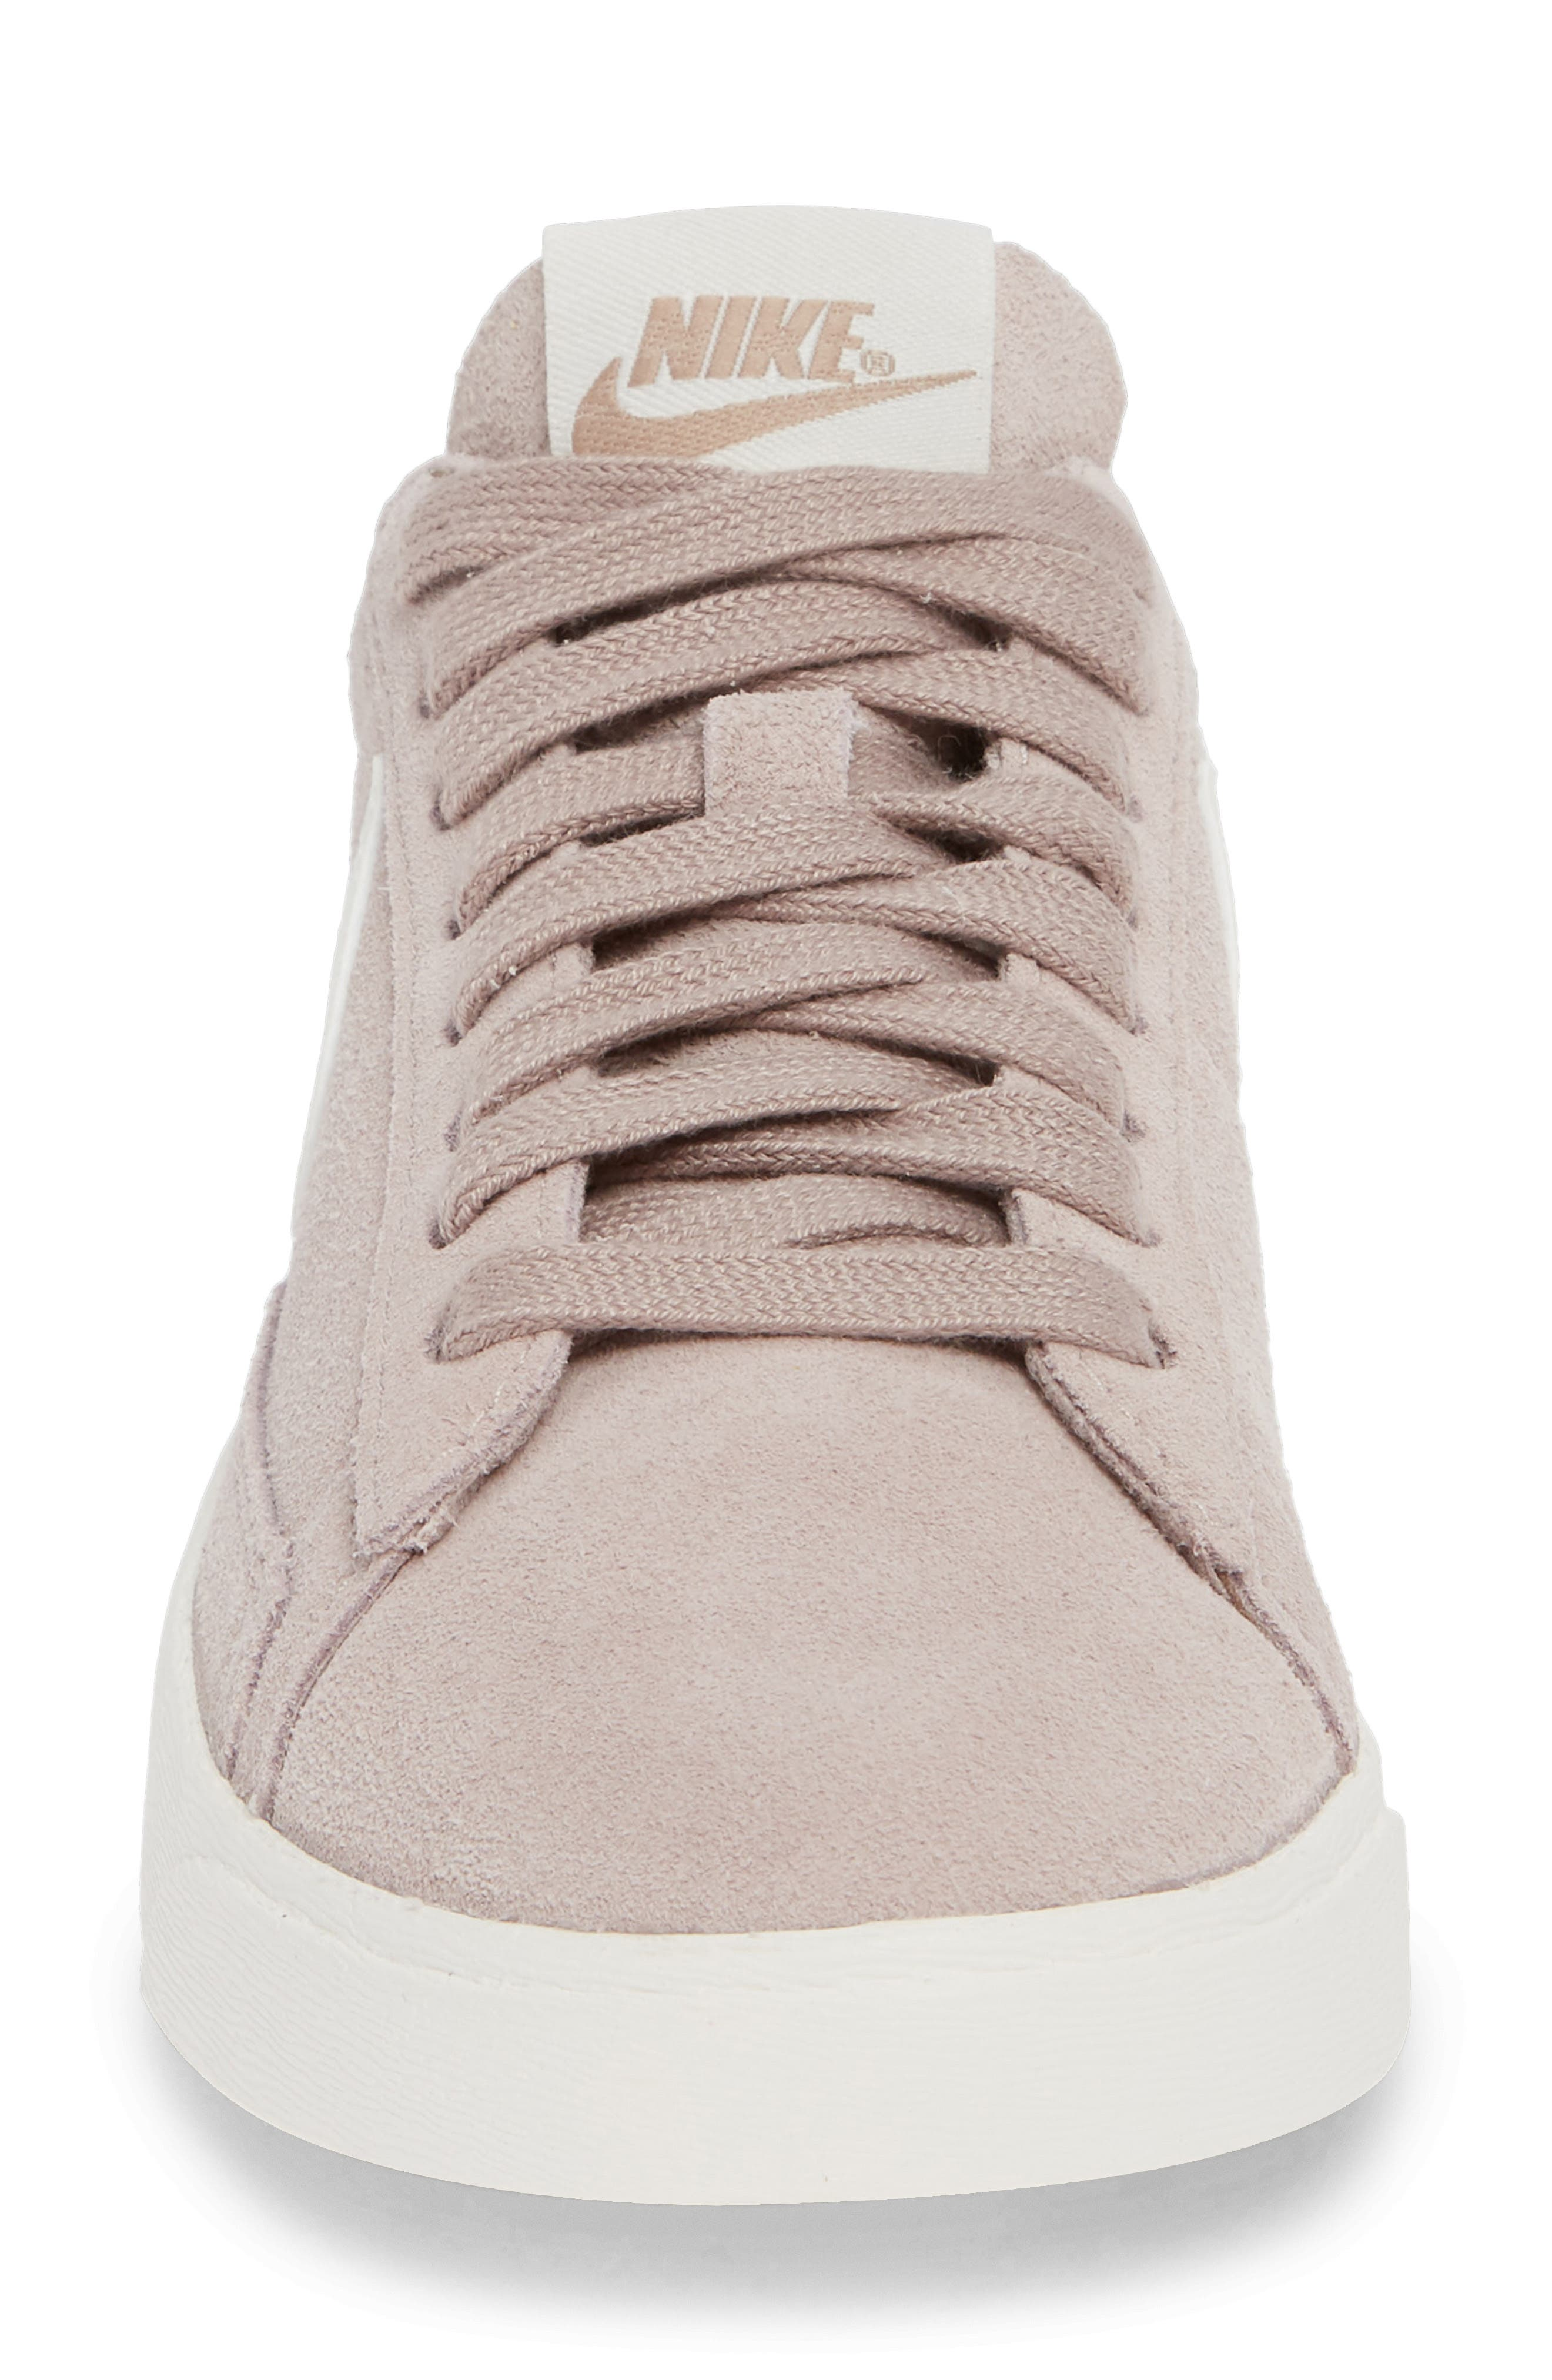 Blazer Low Sneaker,                             Alternate thumbnail 5, color,                             Diffused Taupe/ Sail